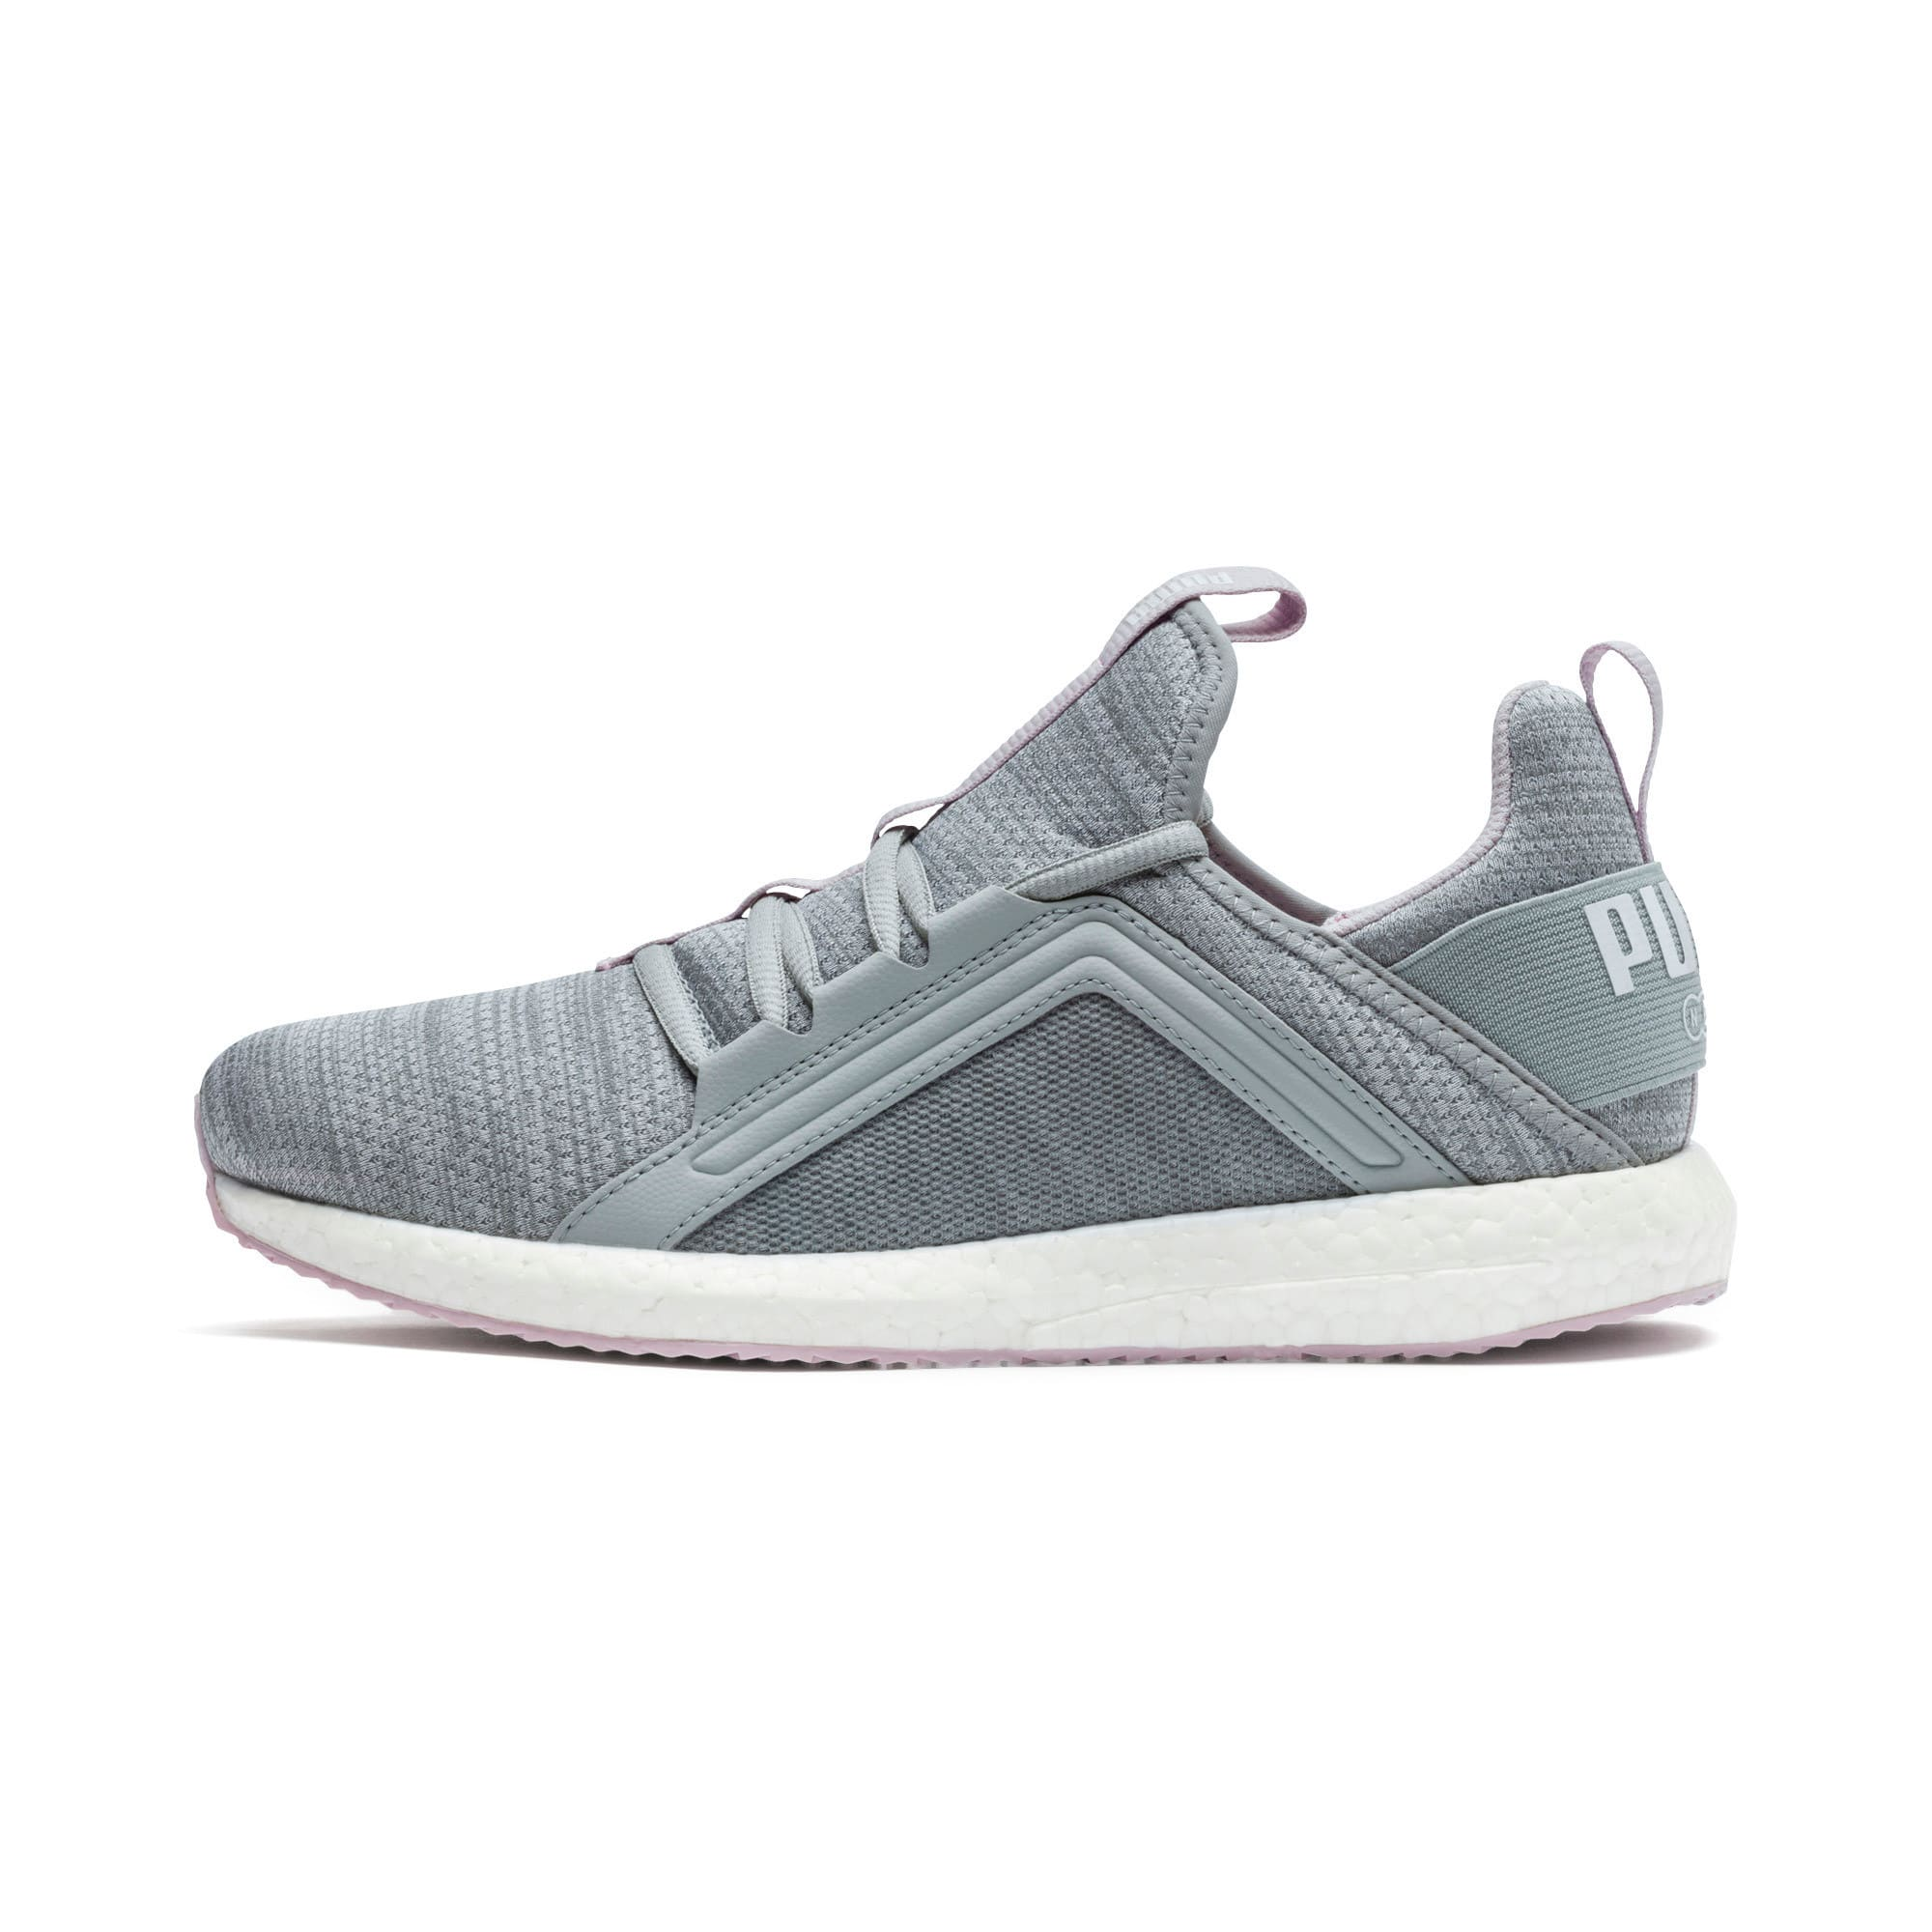 Thumbnail 1 of Mega Energy Heather Knit Women's Running Shoes, Quarry-Winsome Orchid-White, medium-IND